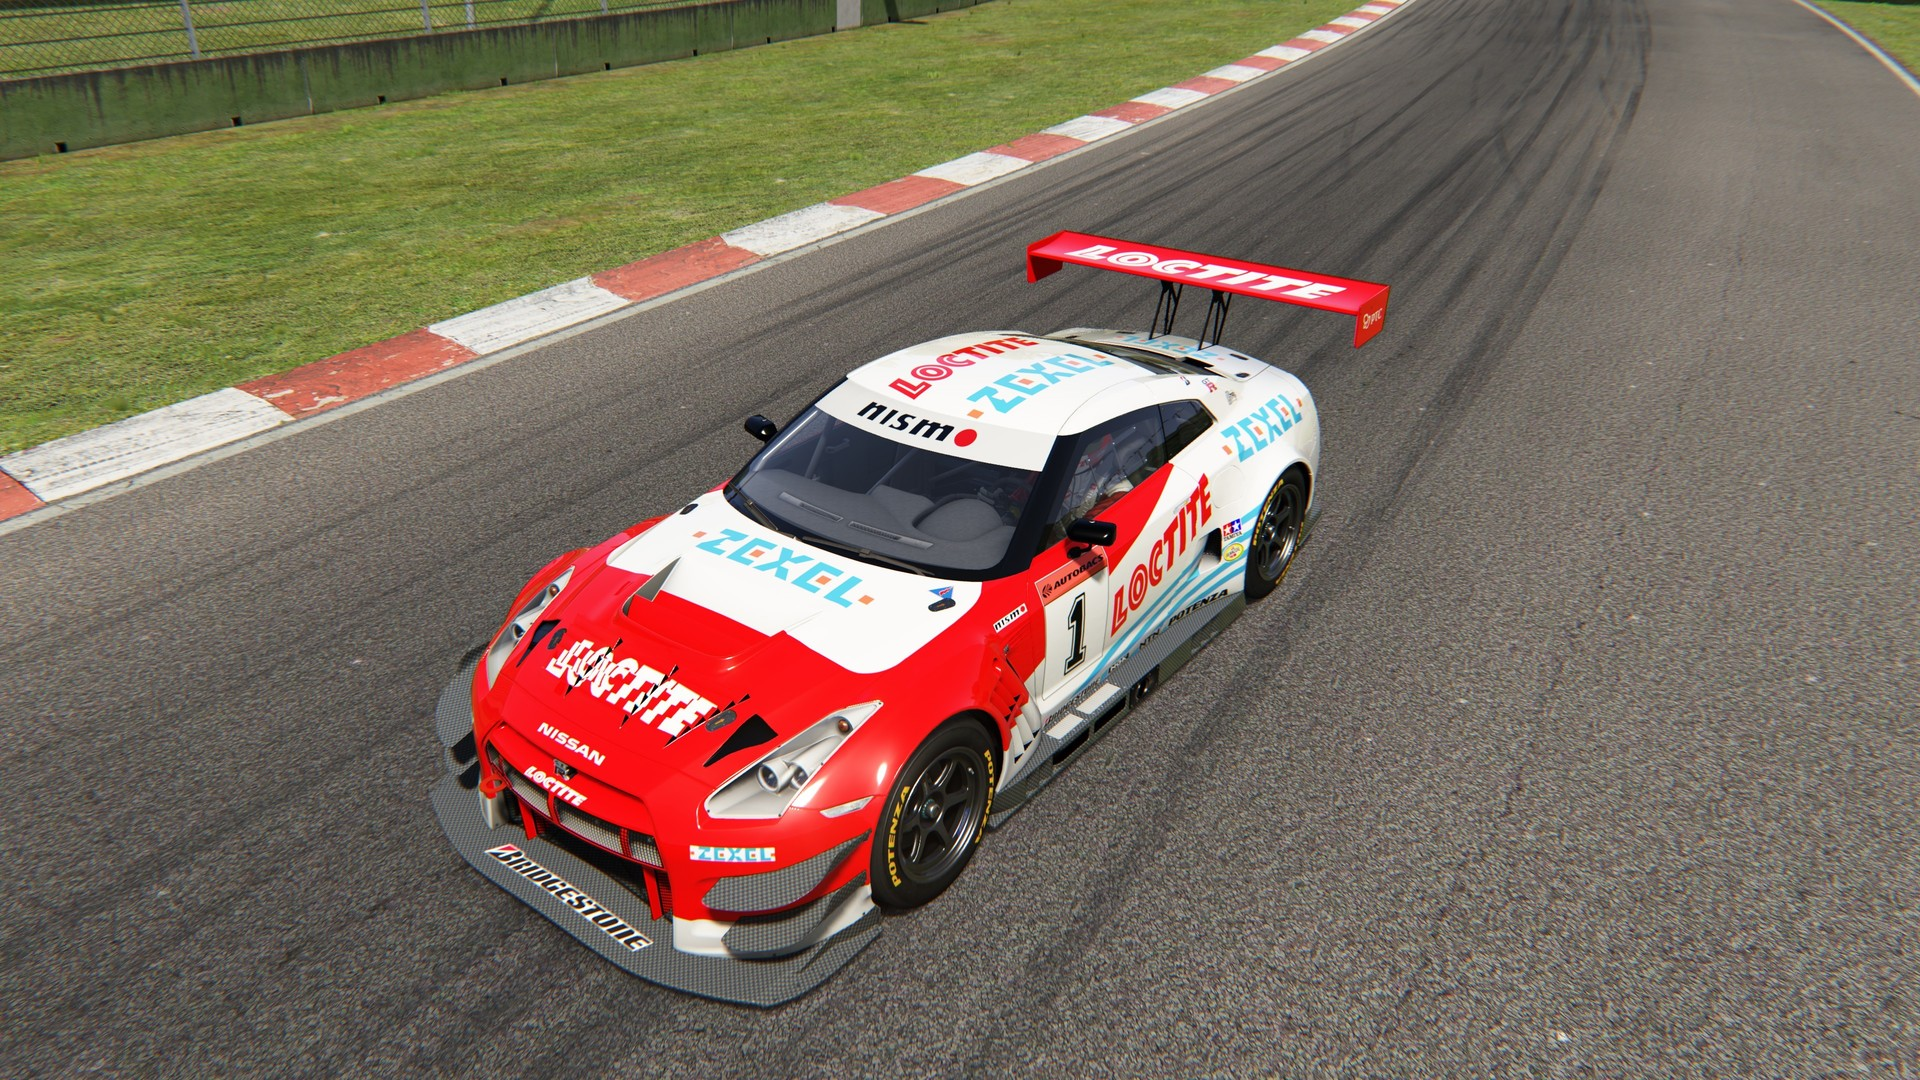 Screenshot_ks_nissan_gtr_gt3_imola_25-10-116-9-42-36.jpg